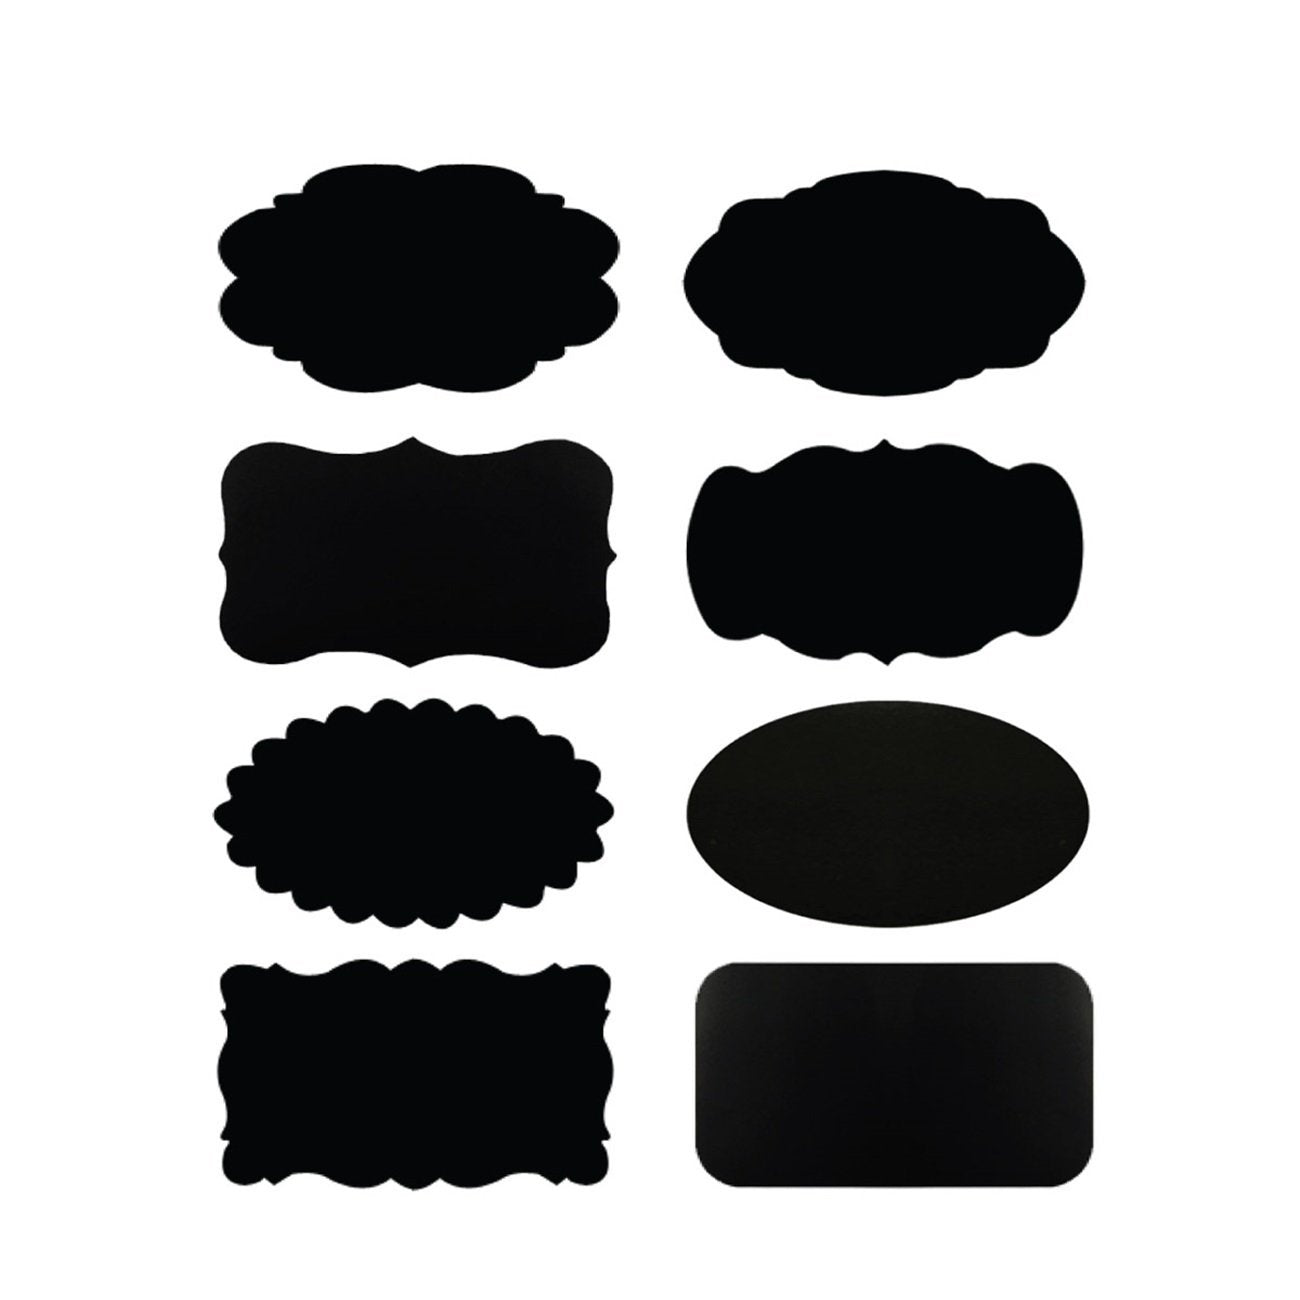 Wrapables Set of 64 Chalkboard Labels / Chalkboard Stickers with White Liquid Chalk Pen